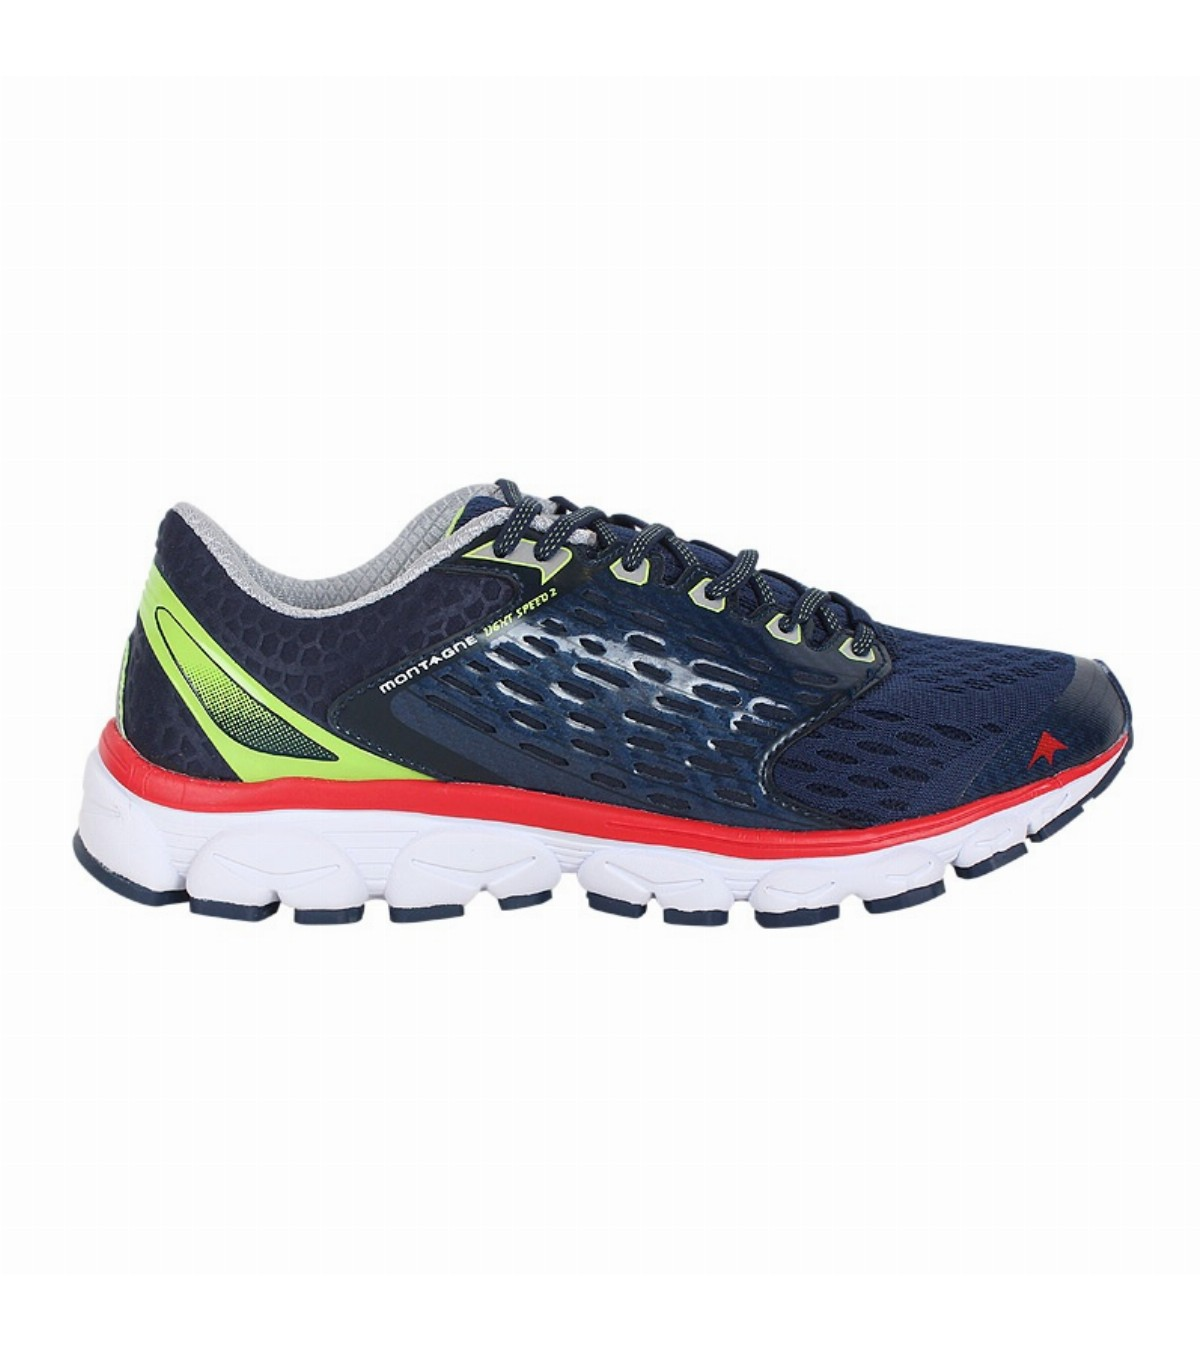 Zapatillas de running de hombre Light Speed2